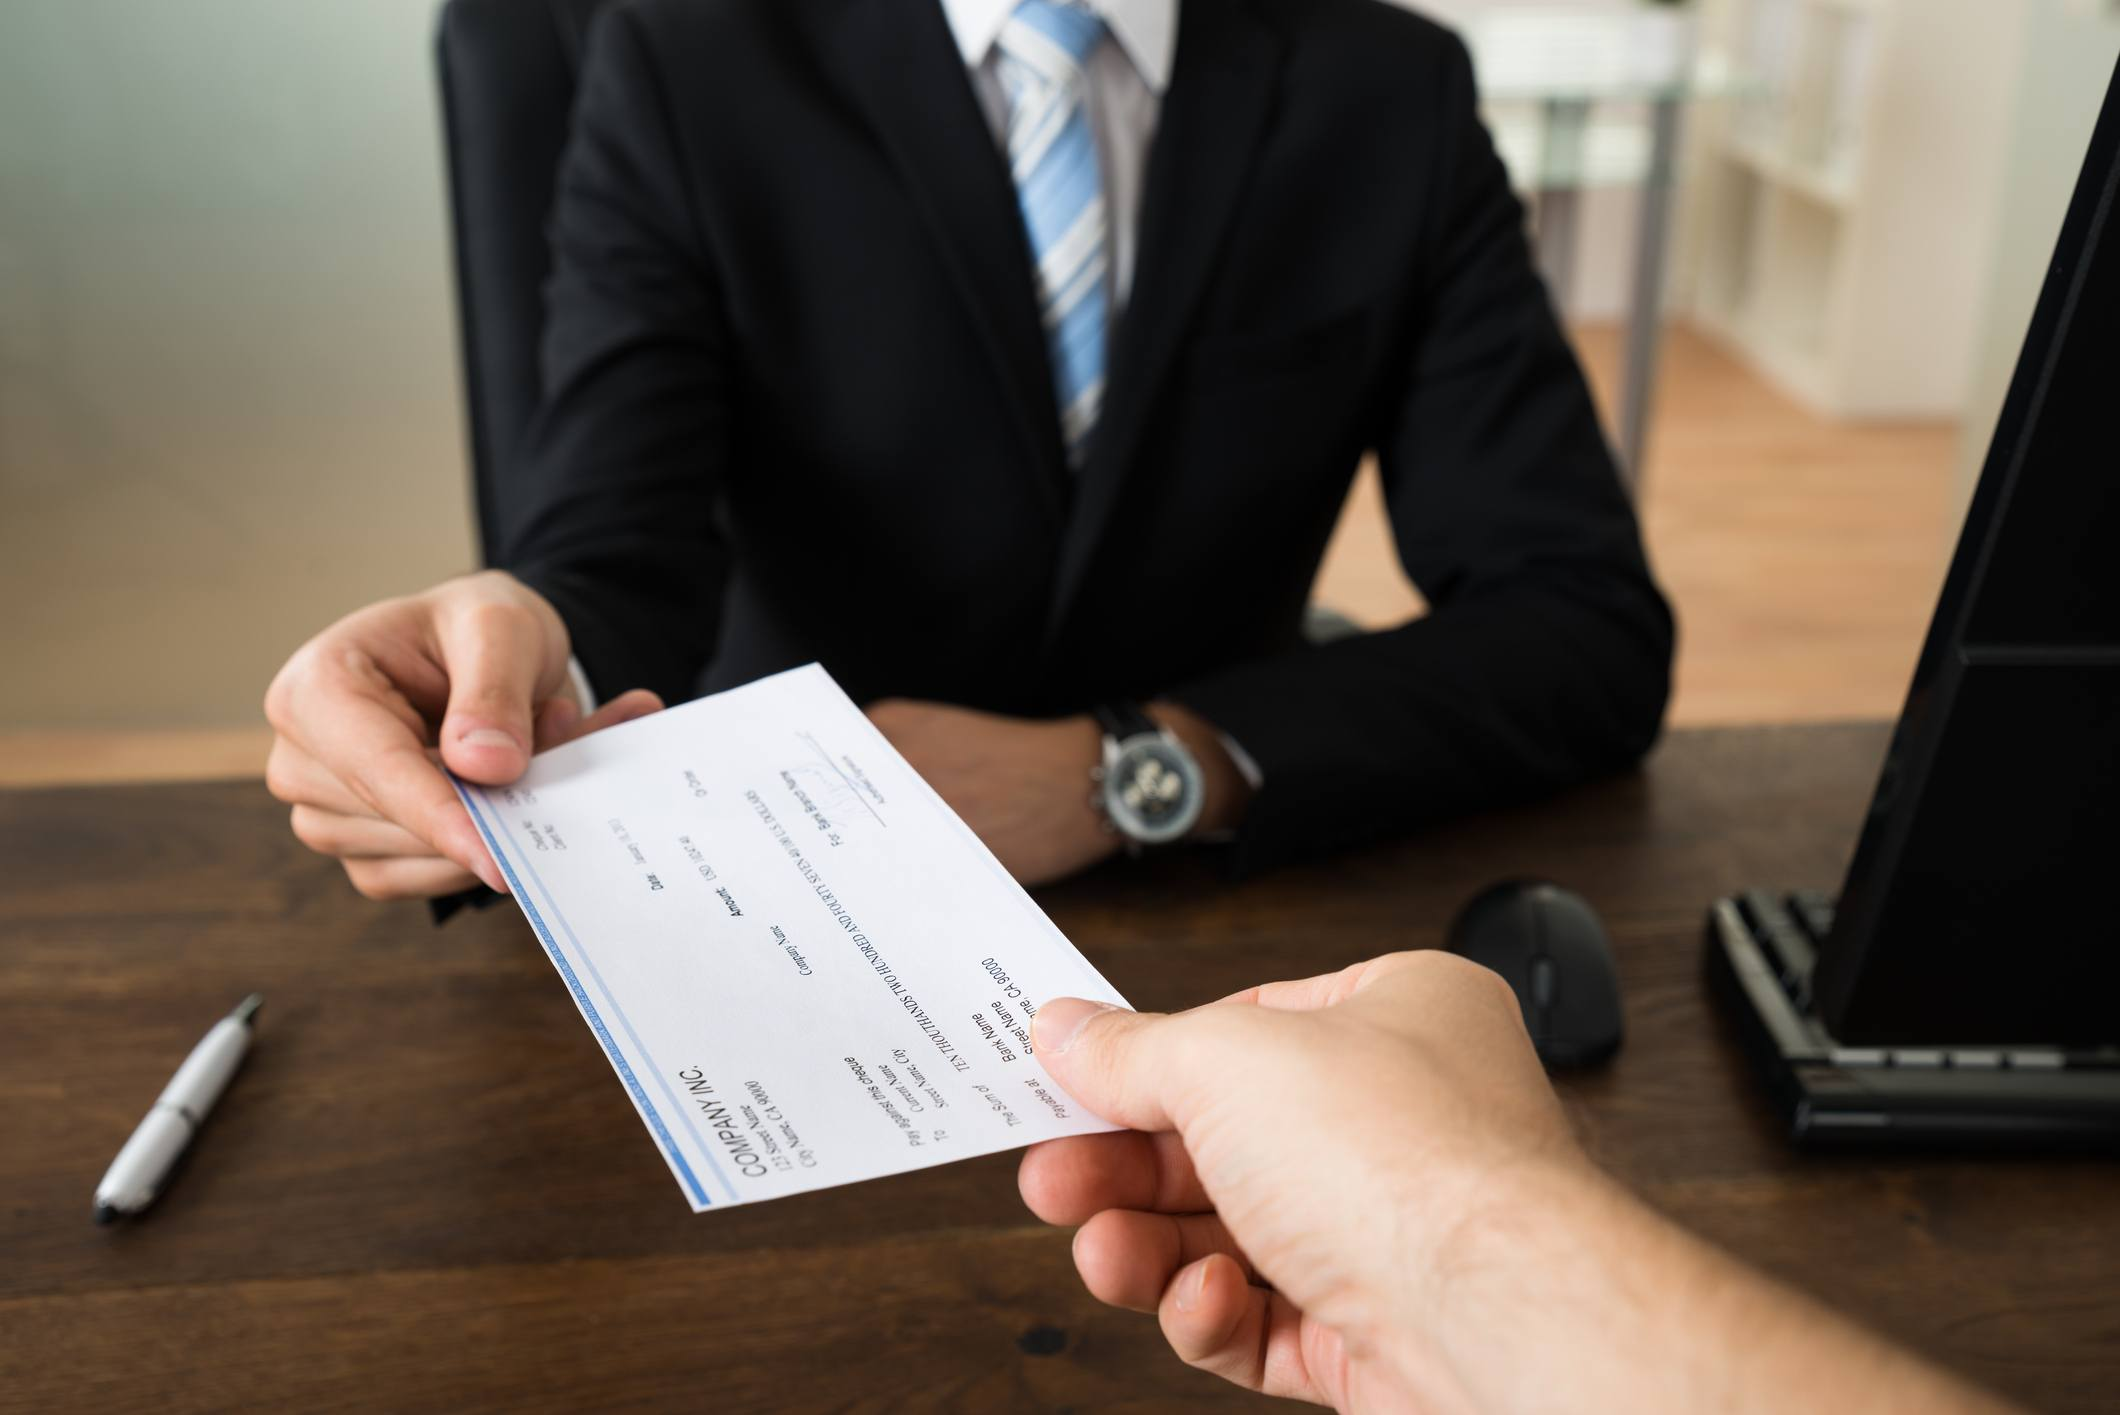 Businessman Hands Giving Cheque To Other Person In Office